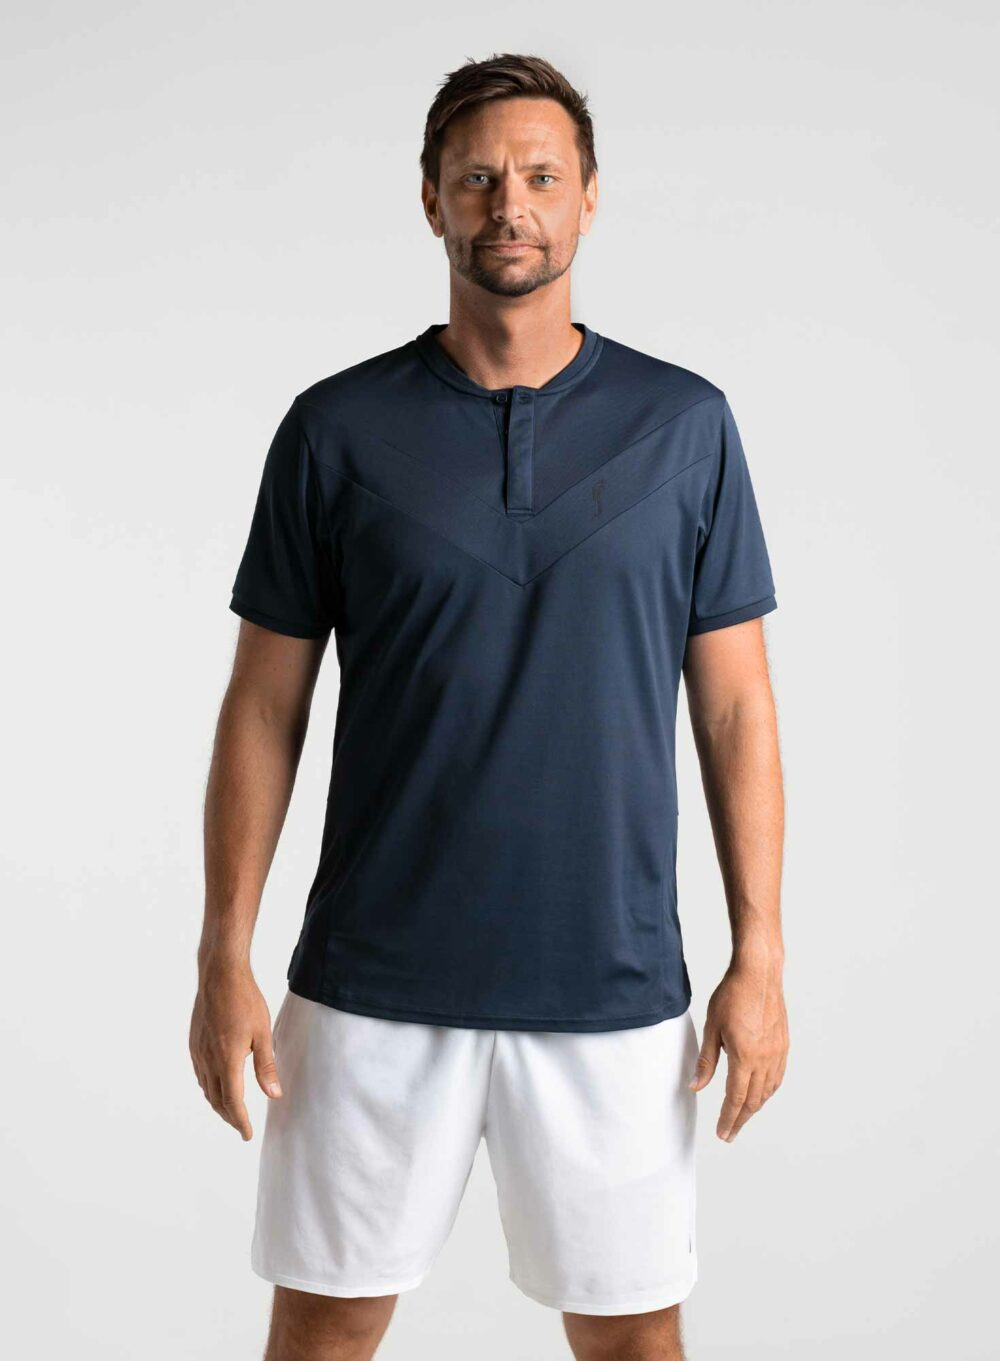 rs_court_active_polo_navy_4